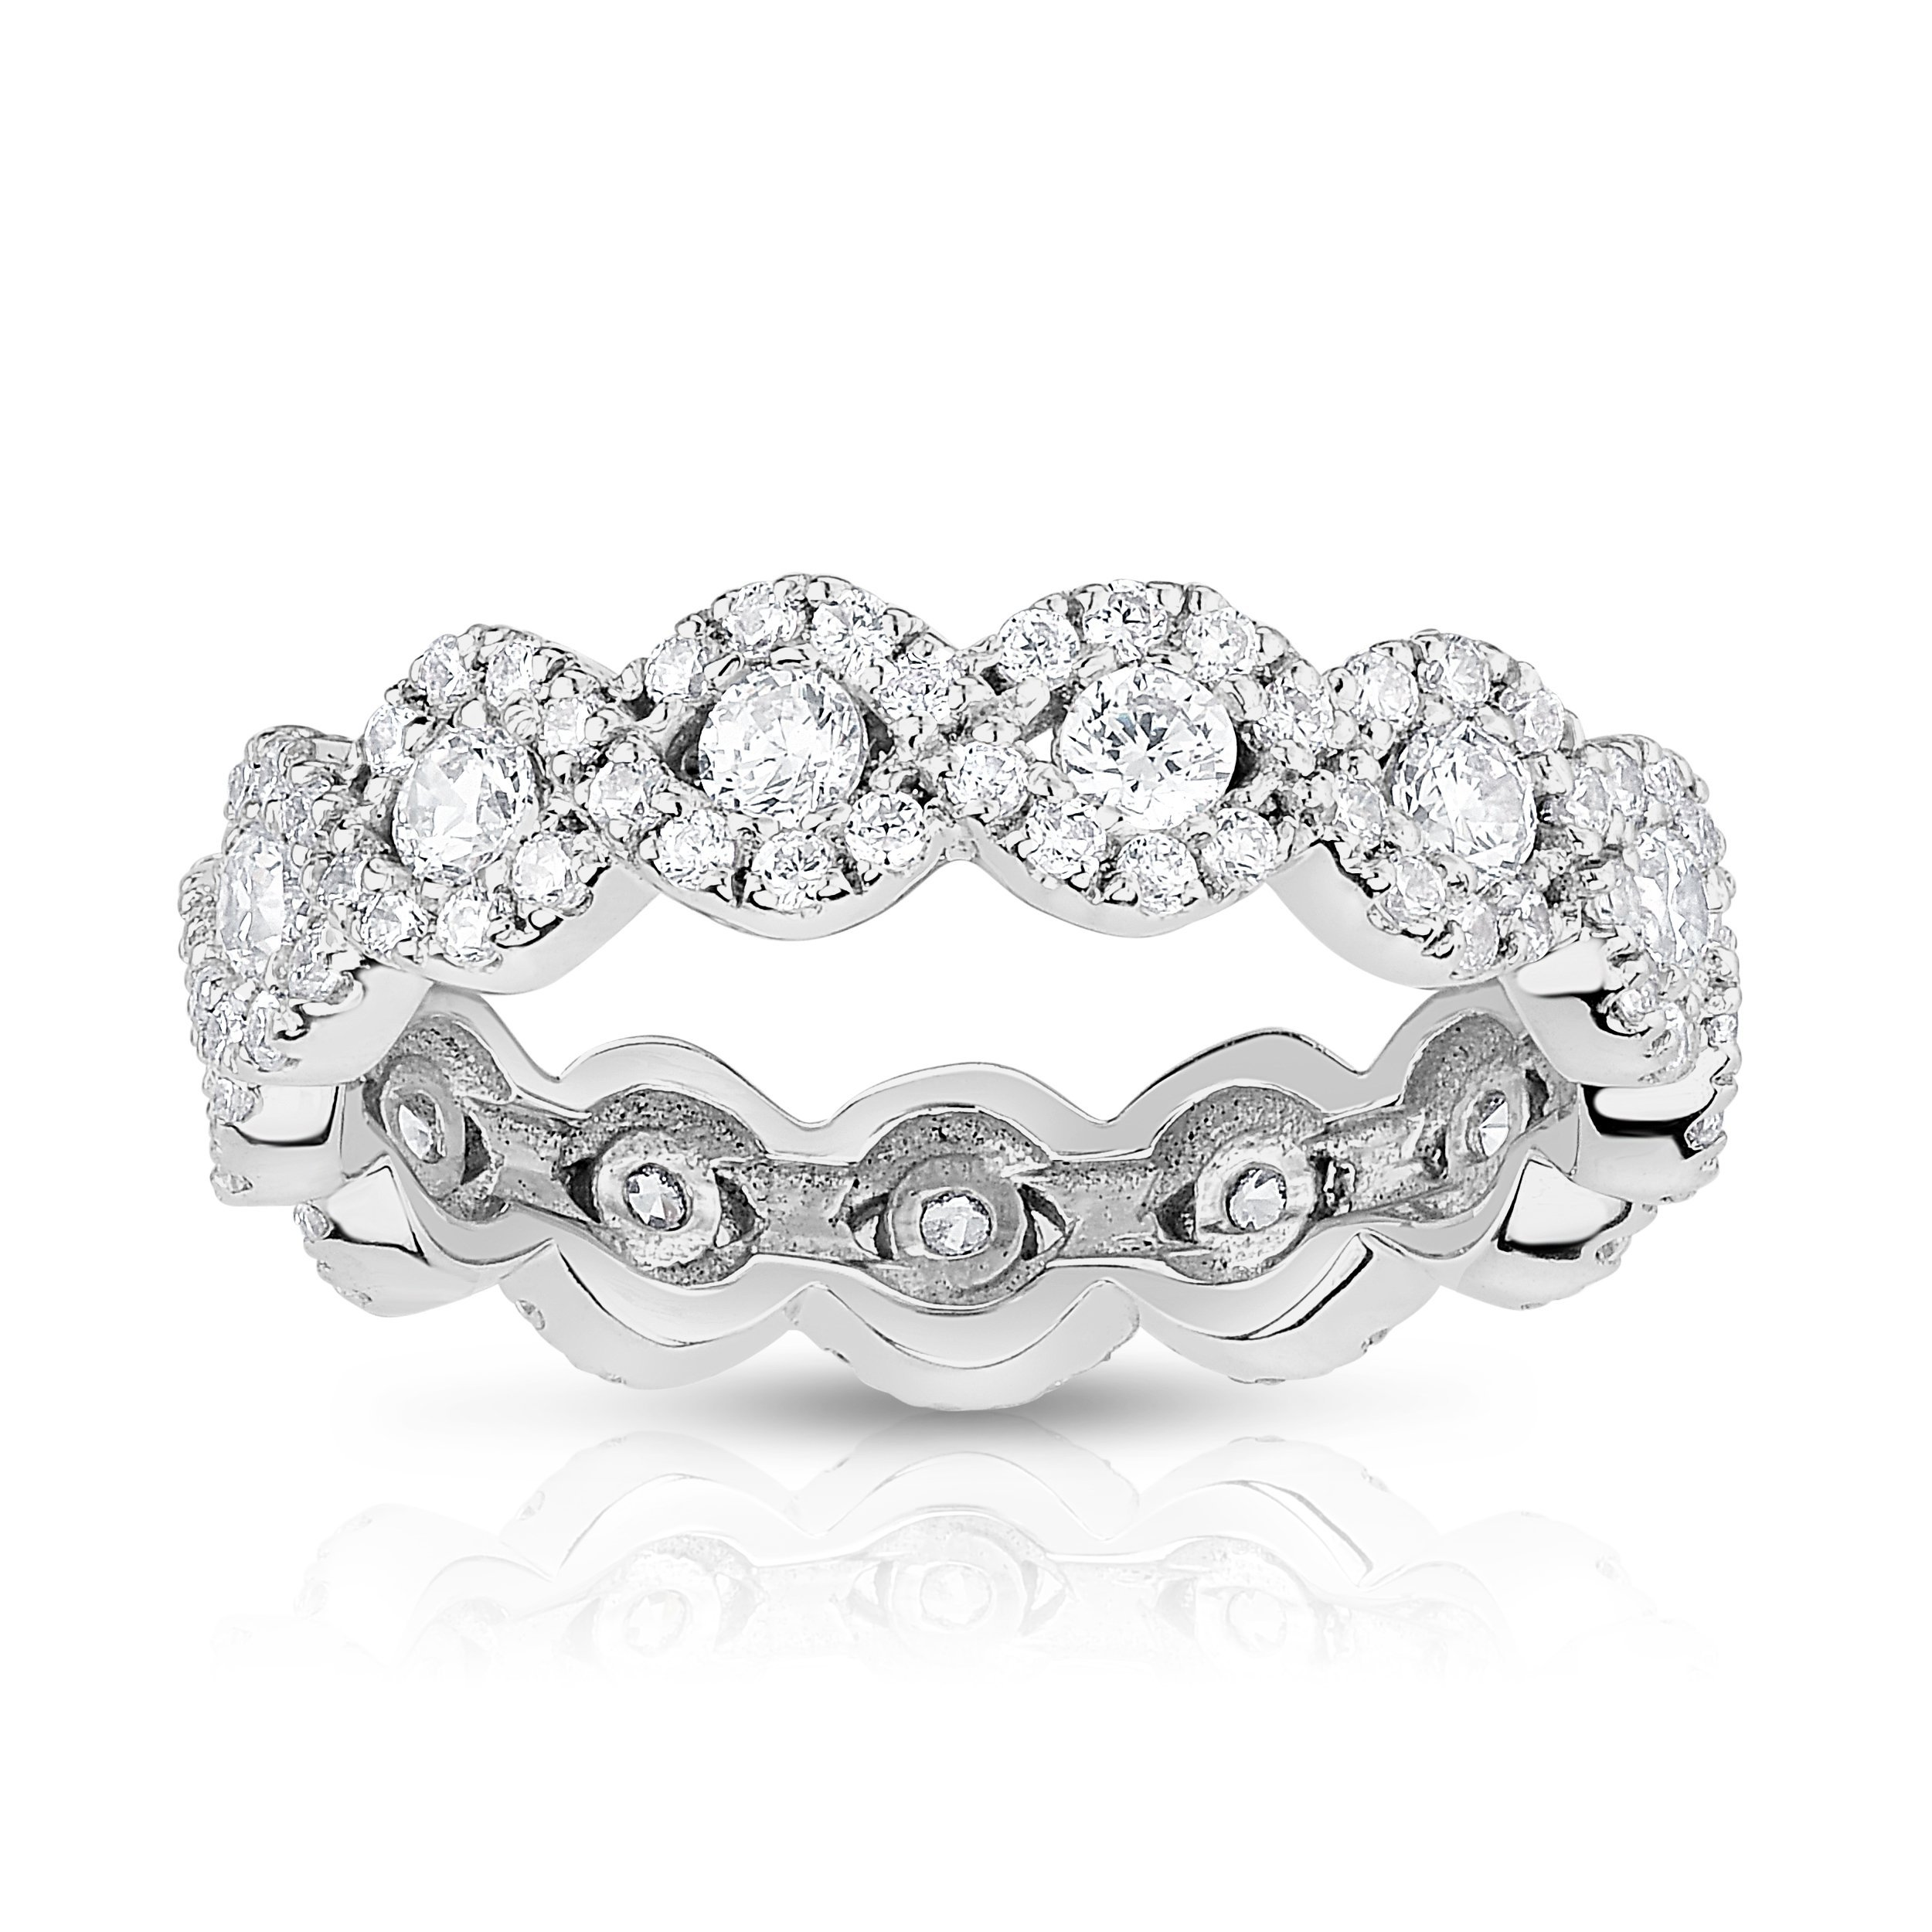 Noray Designs 14K White Gold Diamond (1.00 Ct, G-H Color, SI2-I1 Clarity) Eternity Wedding Ring